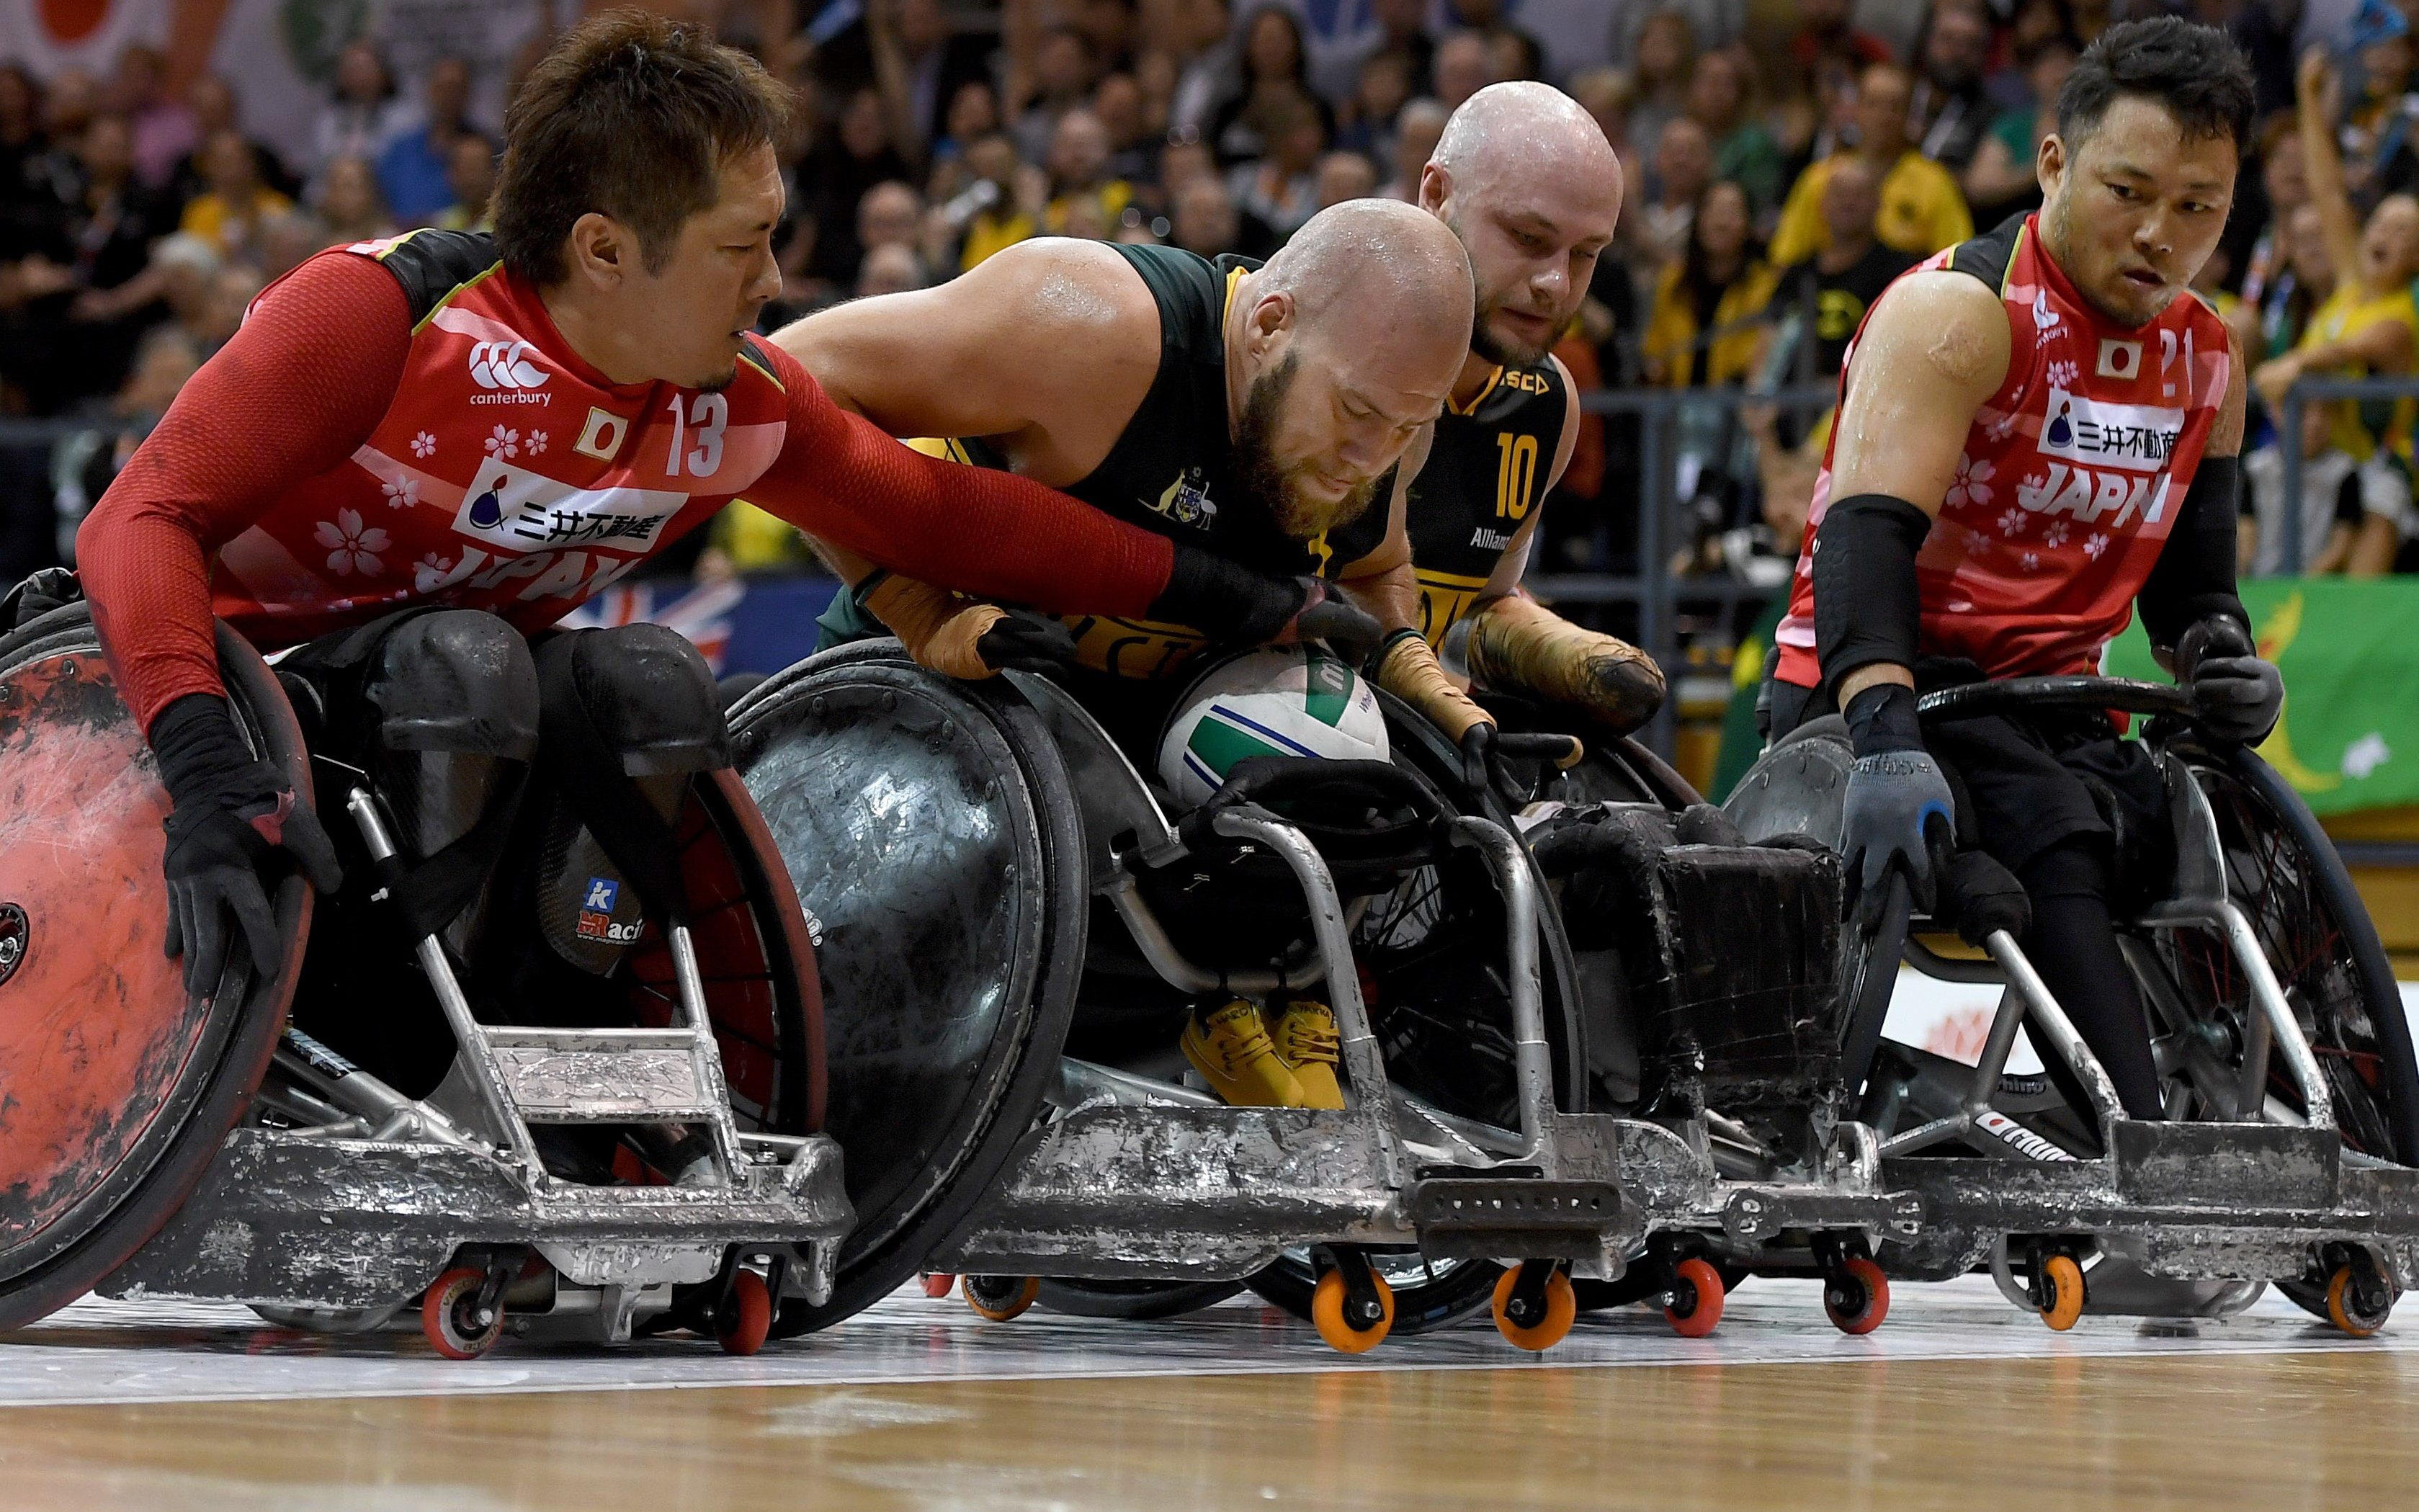 Australia claim silver at Wheelchair Rugby World Championship after losing to Japan